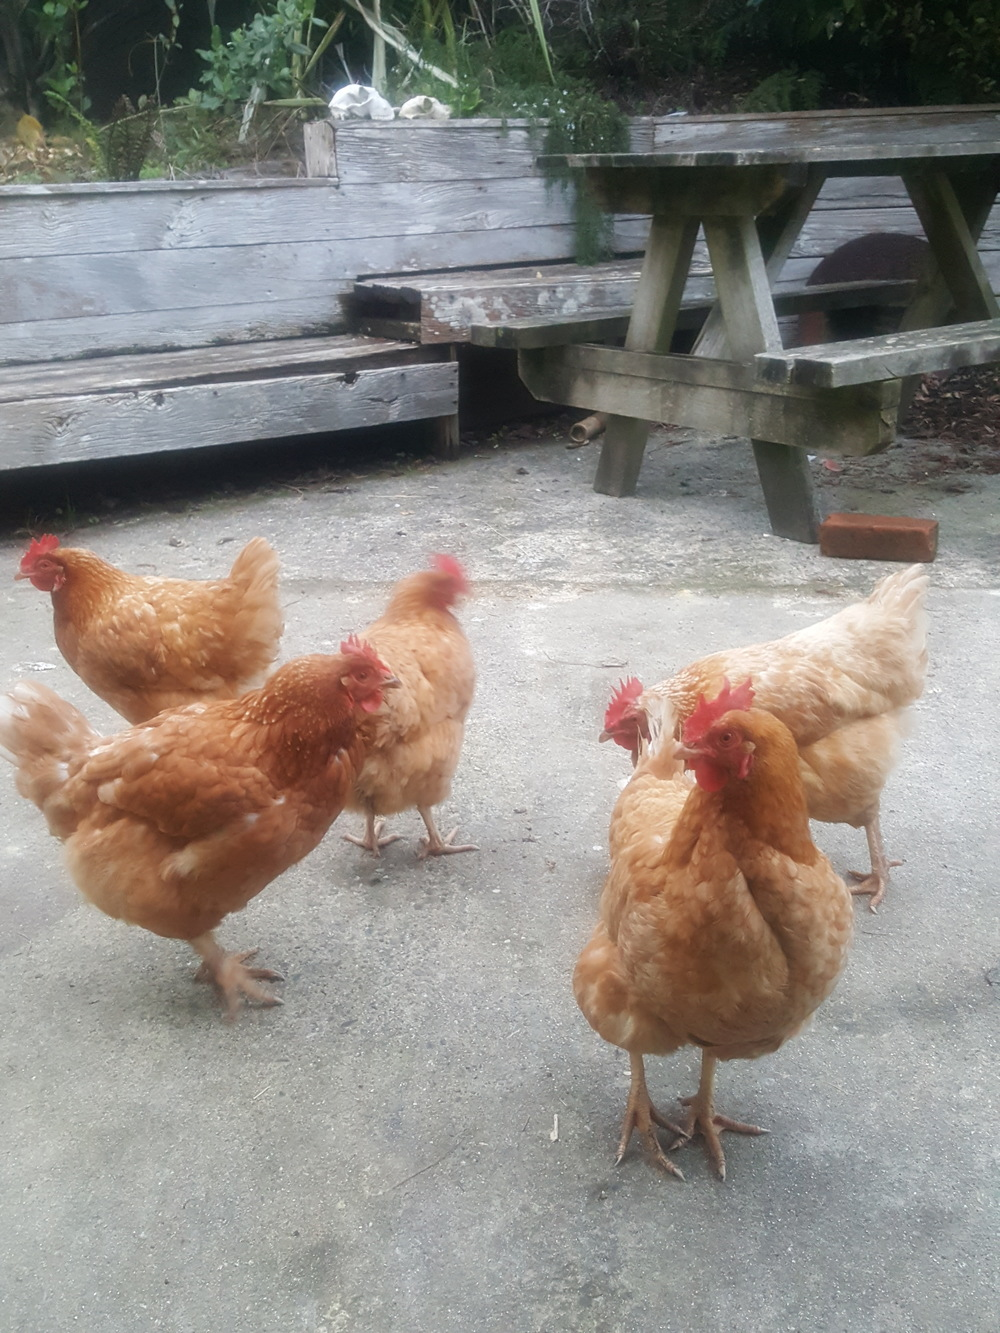 My mates the chickens.